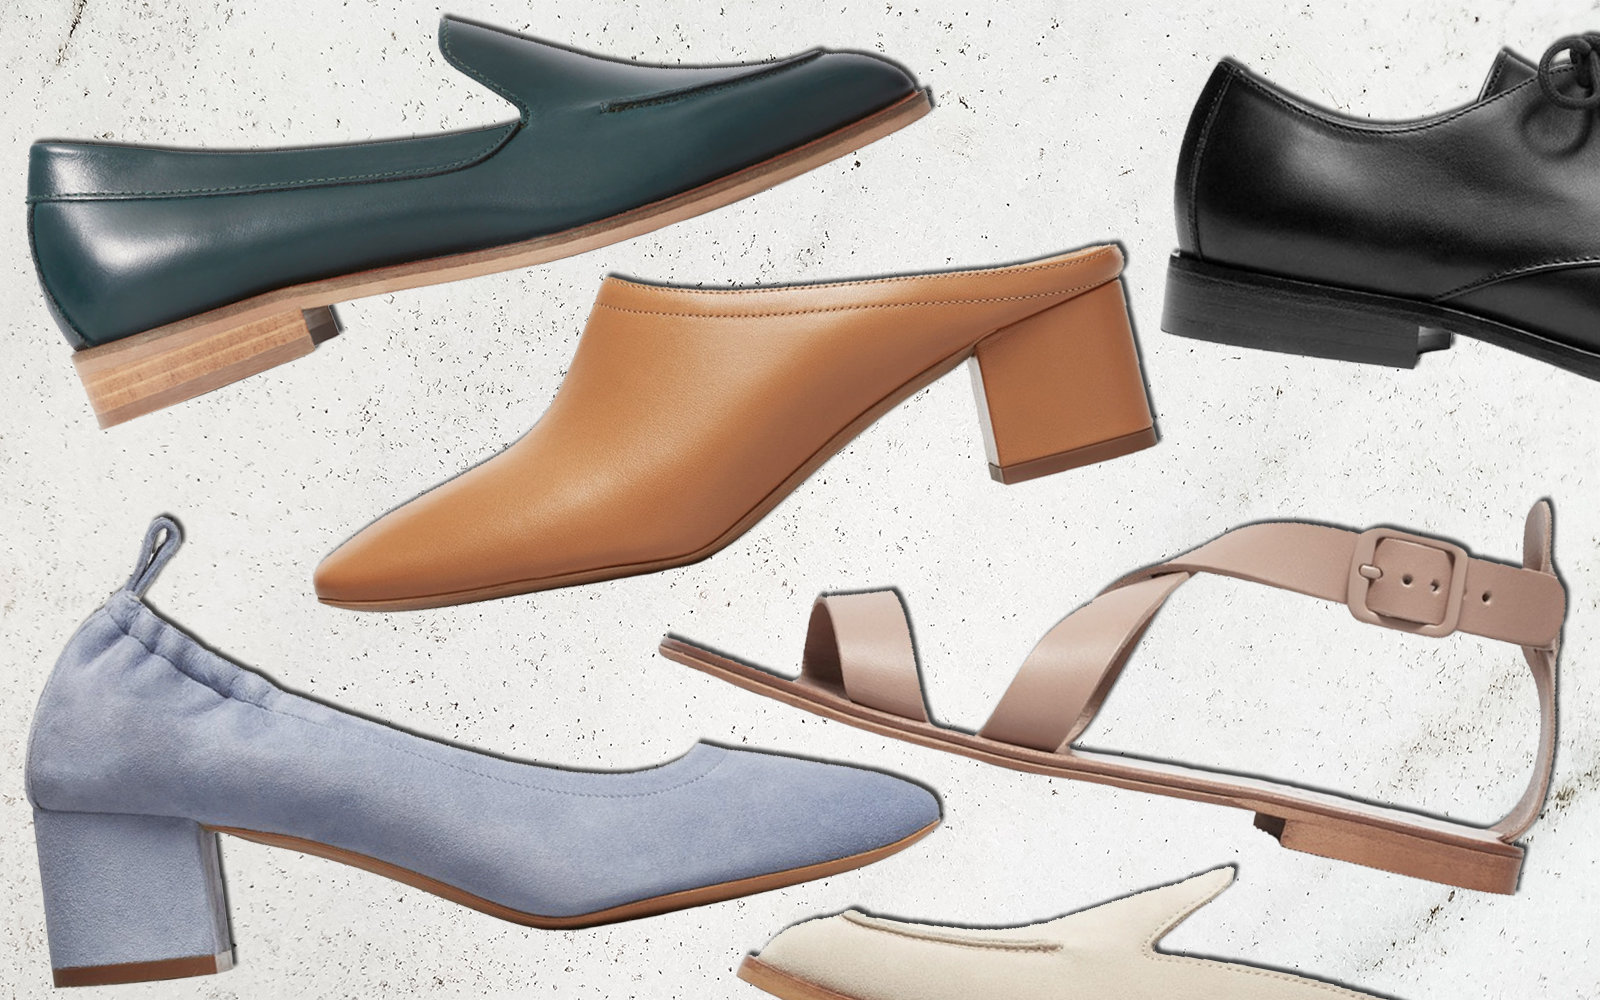 everlane-choose-what-you-pay-shoes-sale-EVERLANEPAY1118